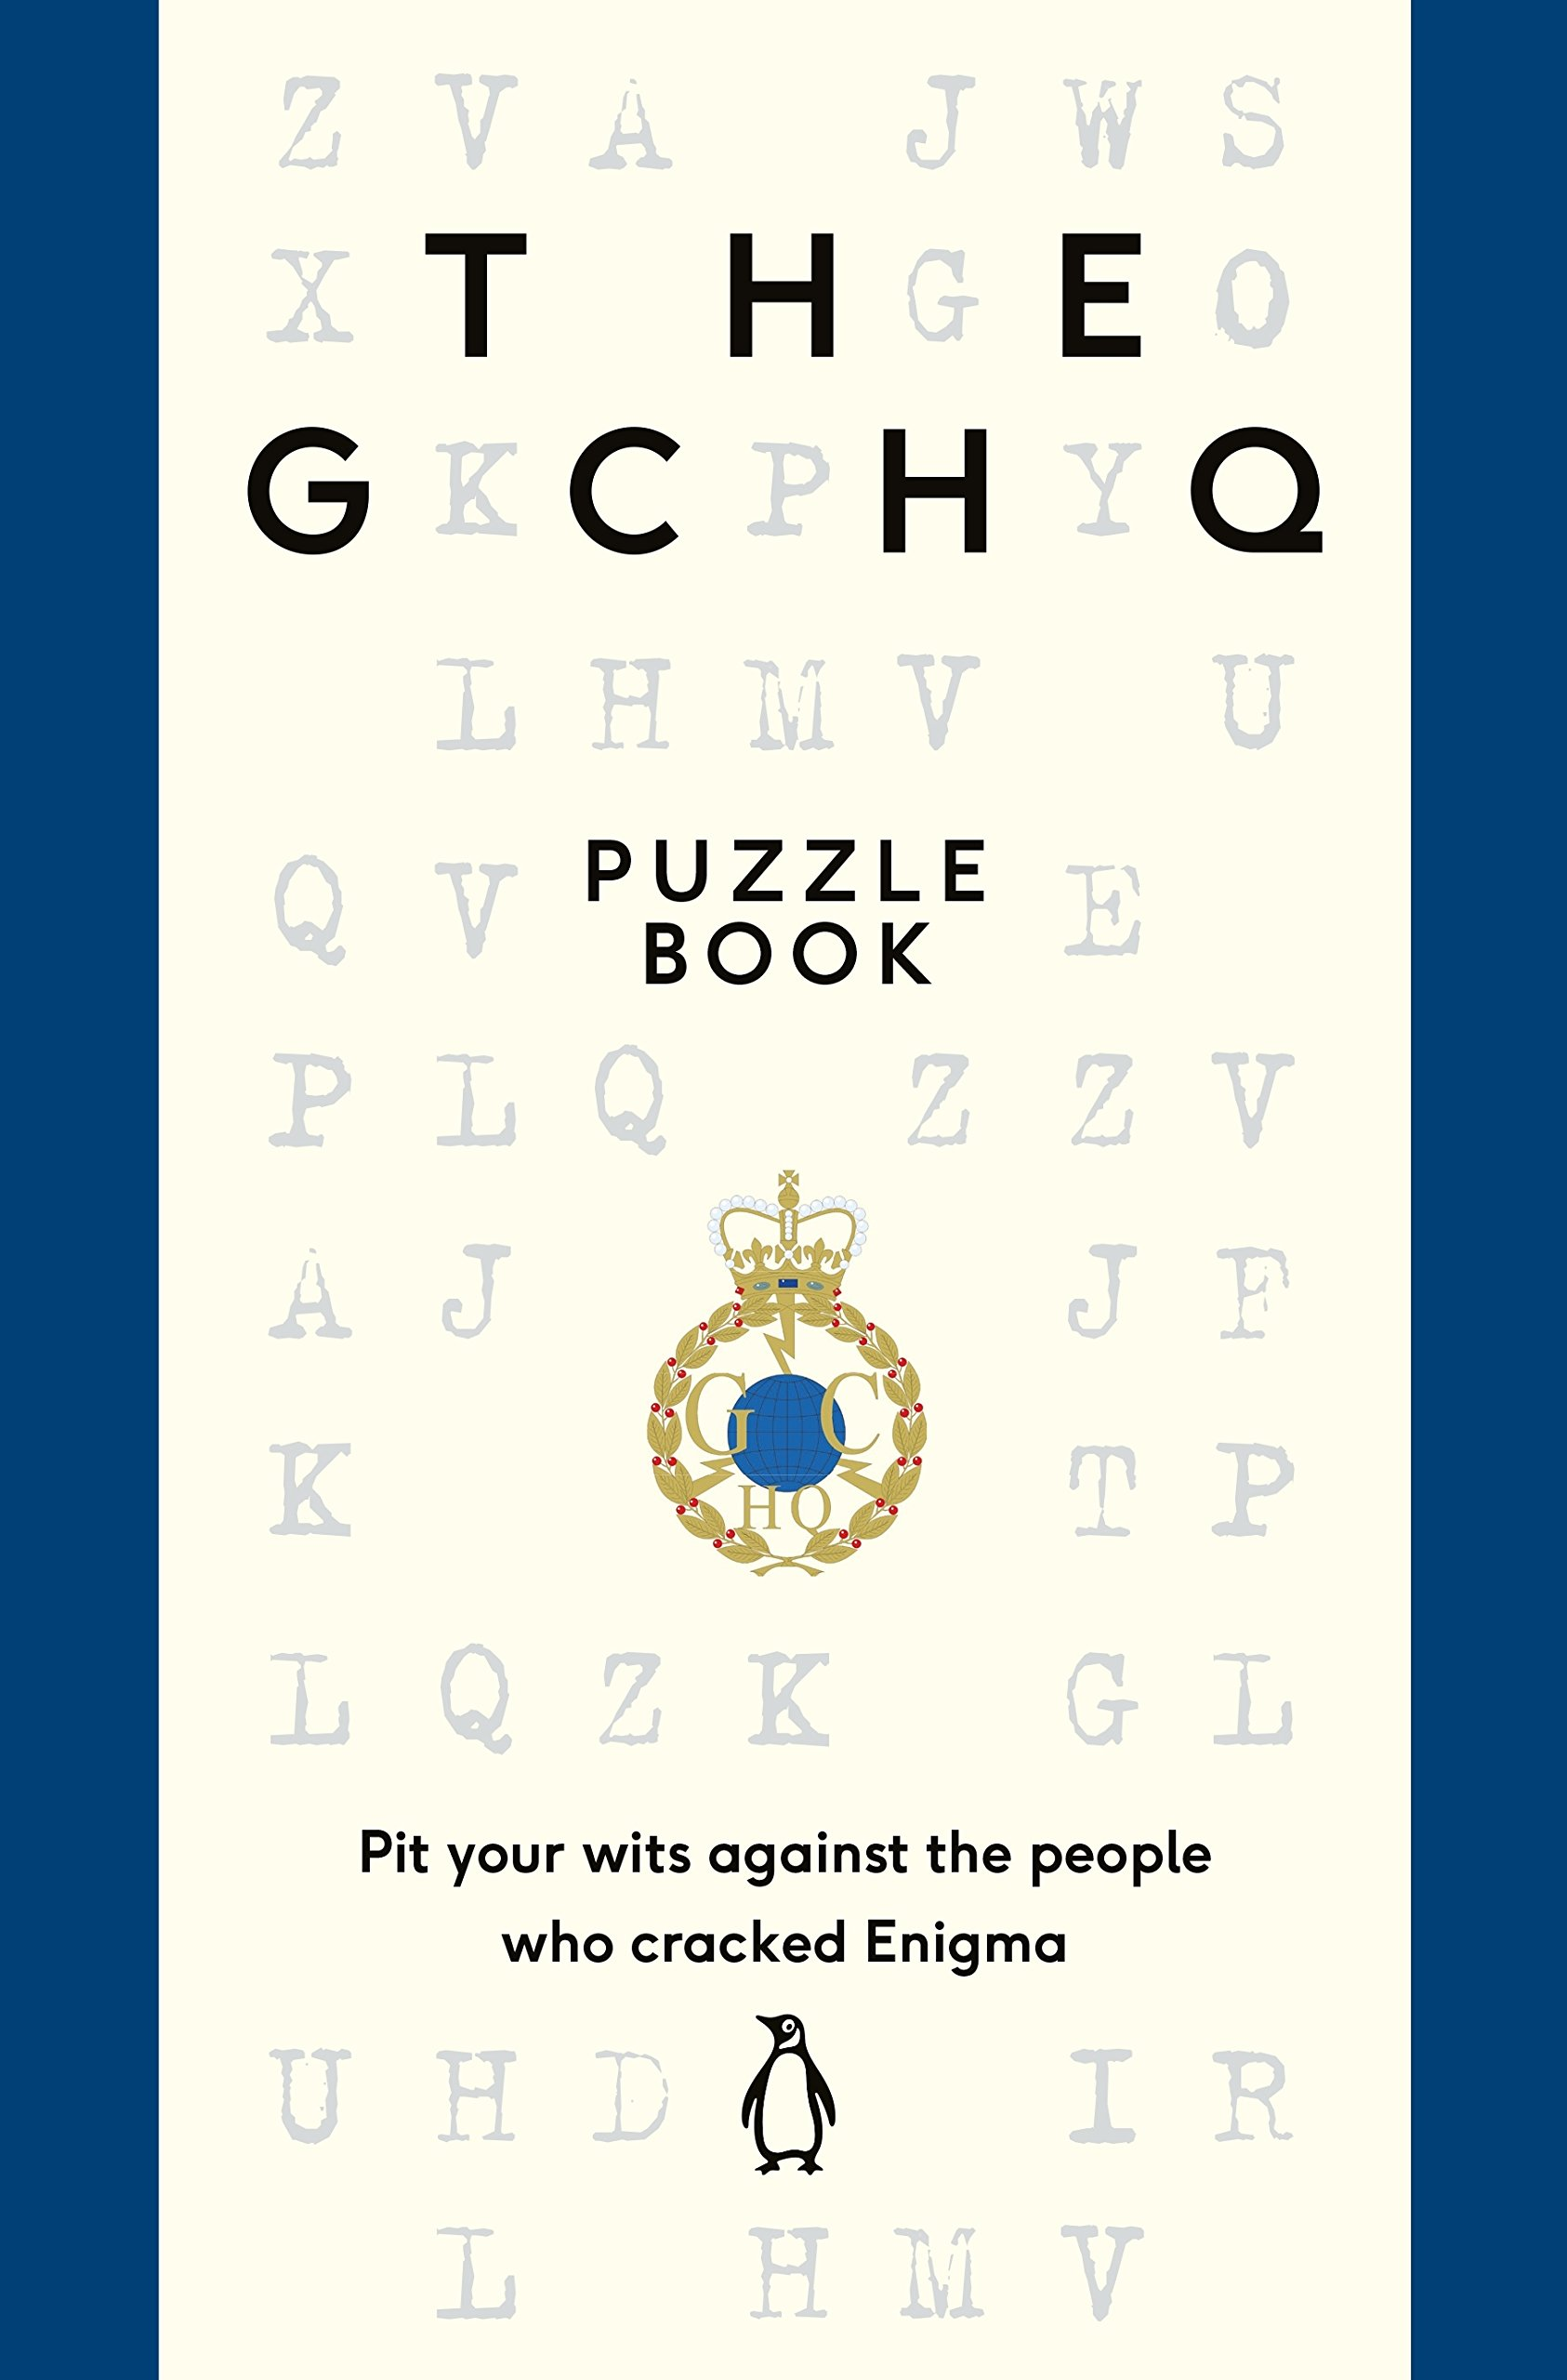 The GCHQ Puzzle Book Amazoncouk GCHQ Books - 20 funniest reviews ever written amazon 6 cracked